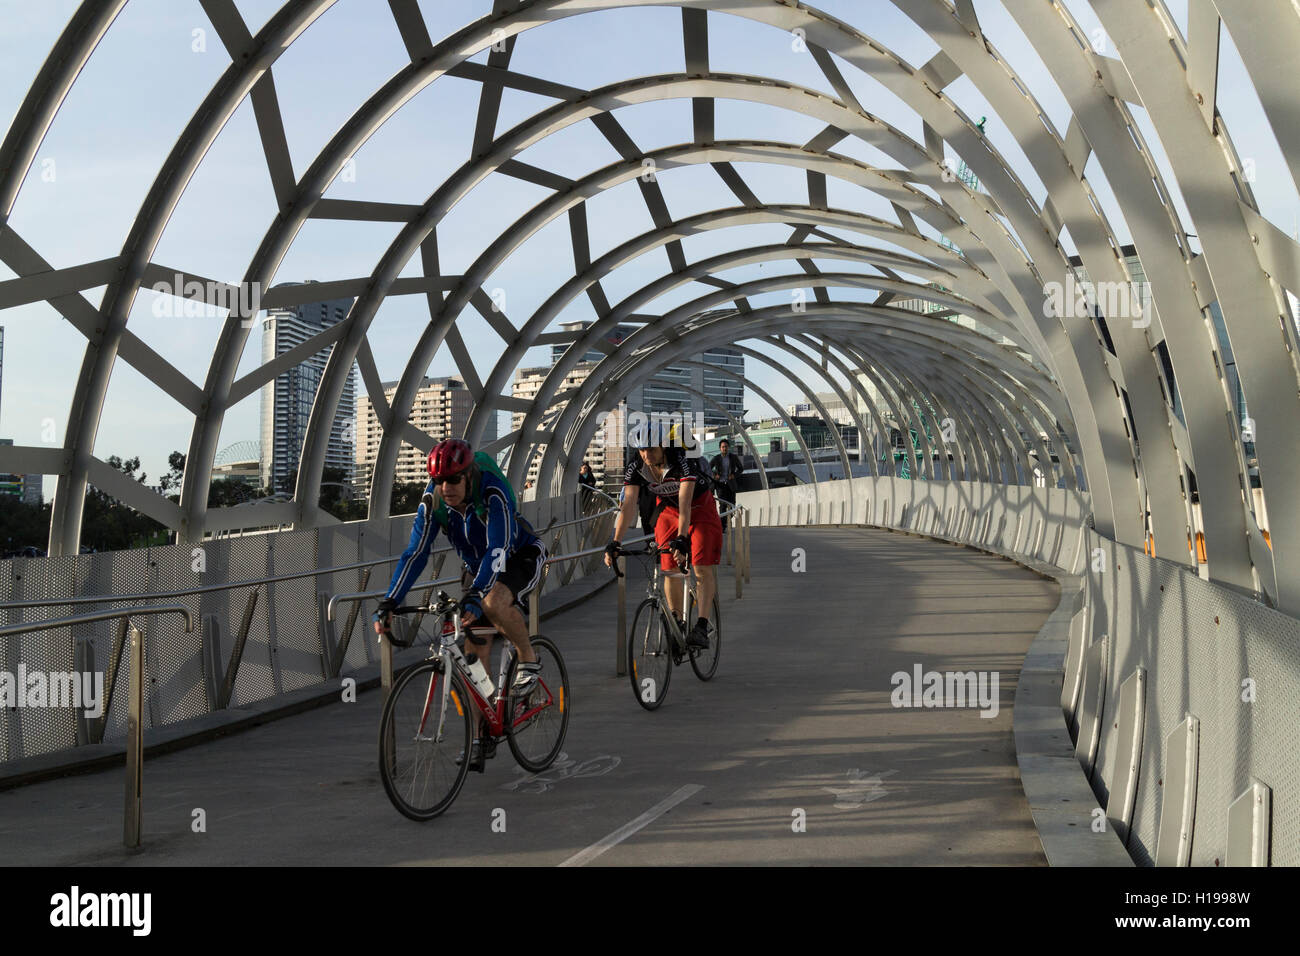 The Webb Bridge a competition-winning design for a  pedestrian/cycle bridge over the Yarra river  Docklands Melbourne - Stock Image